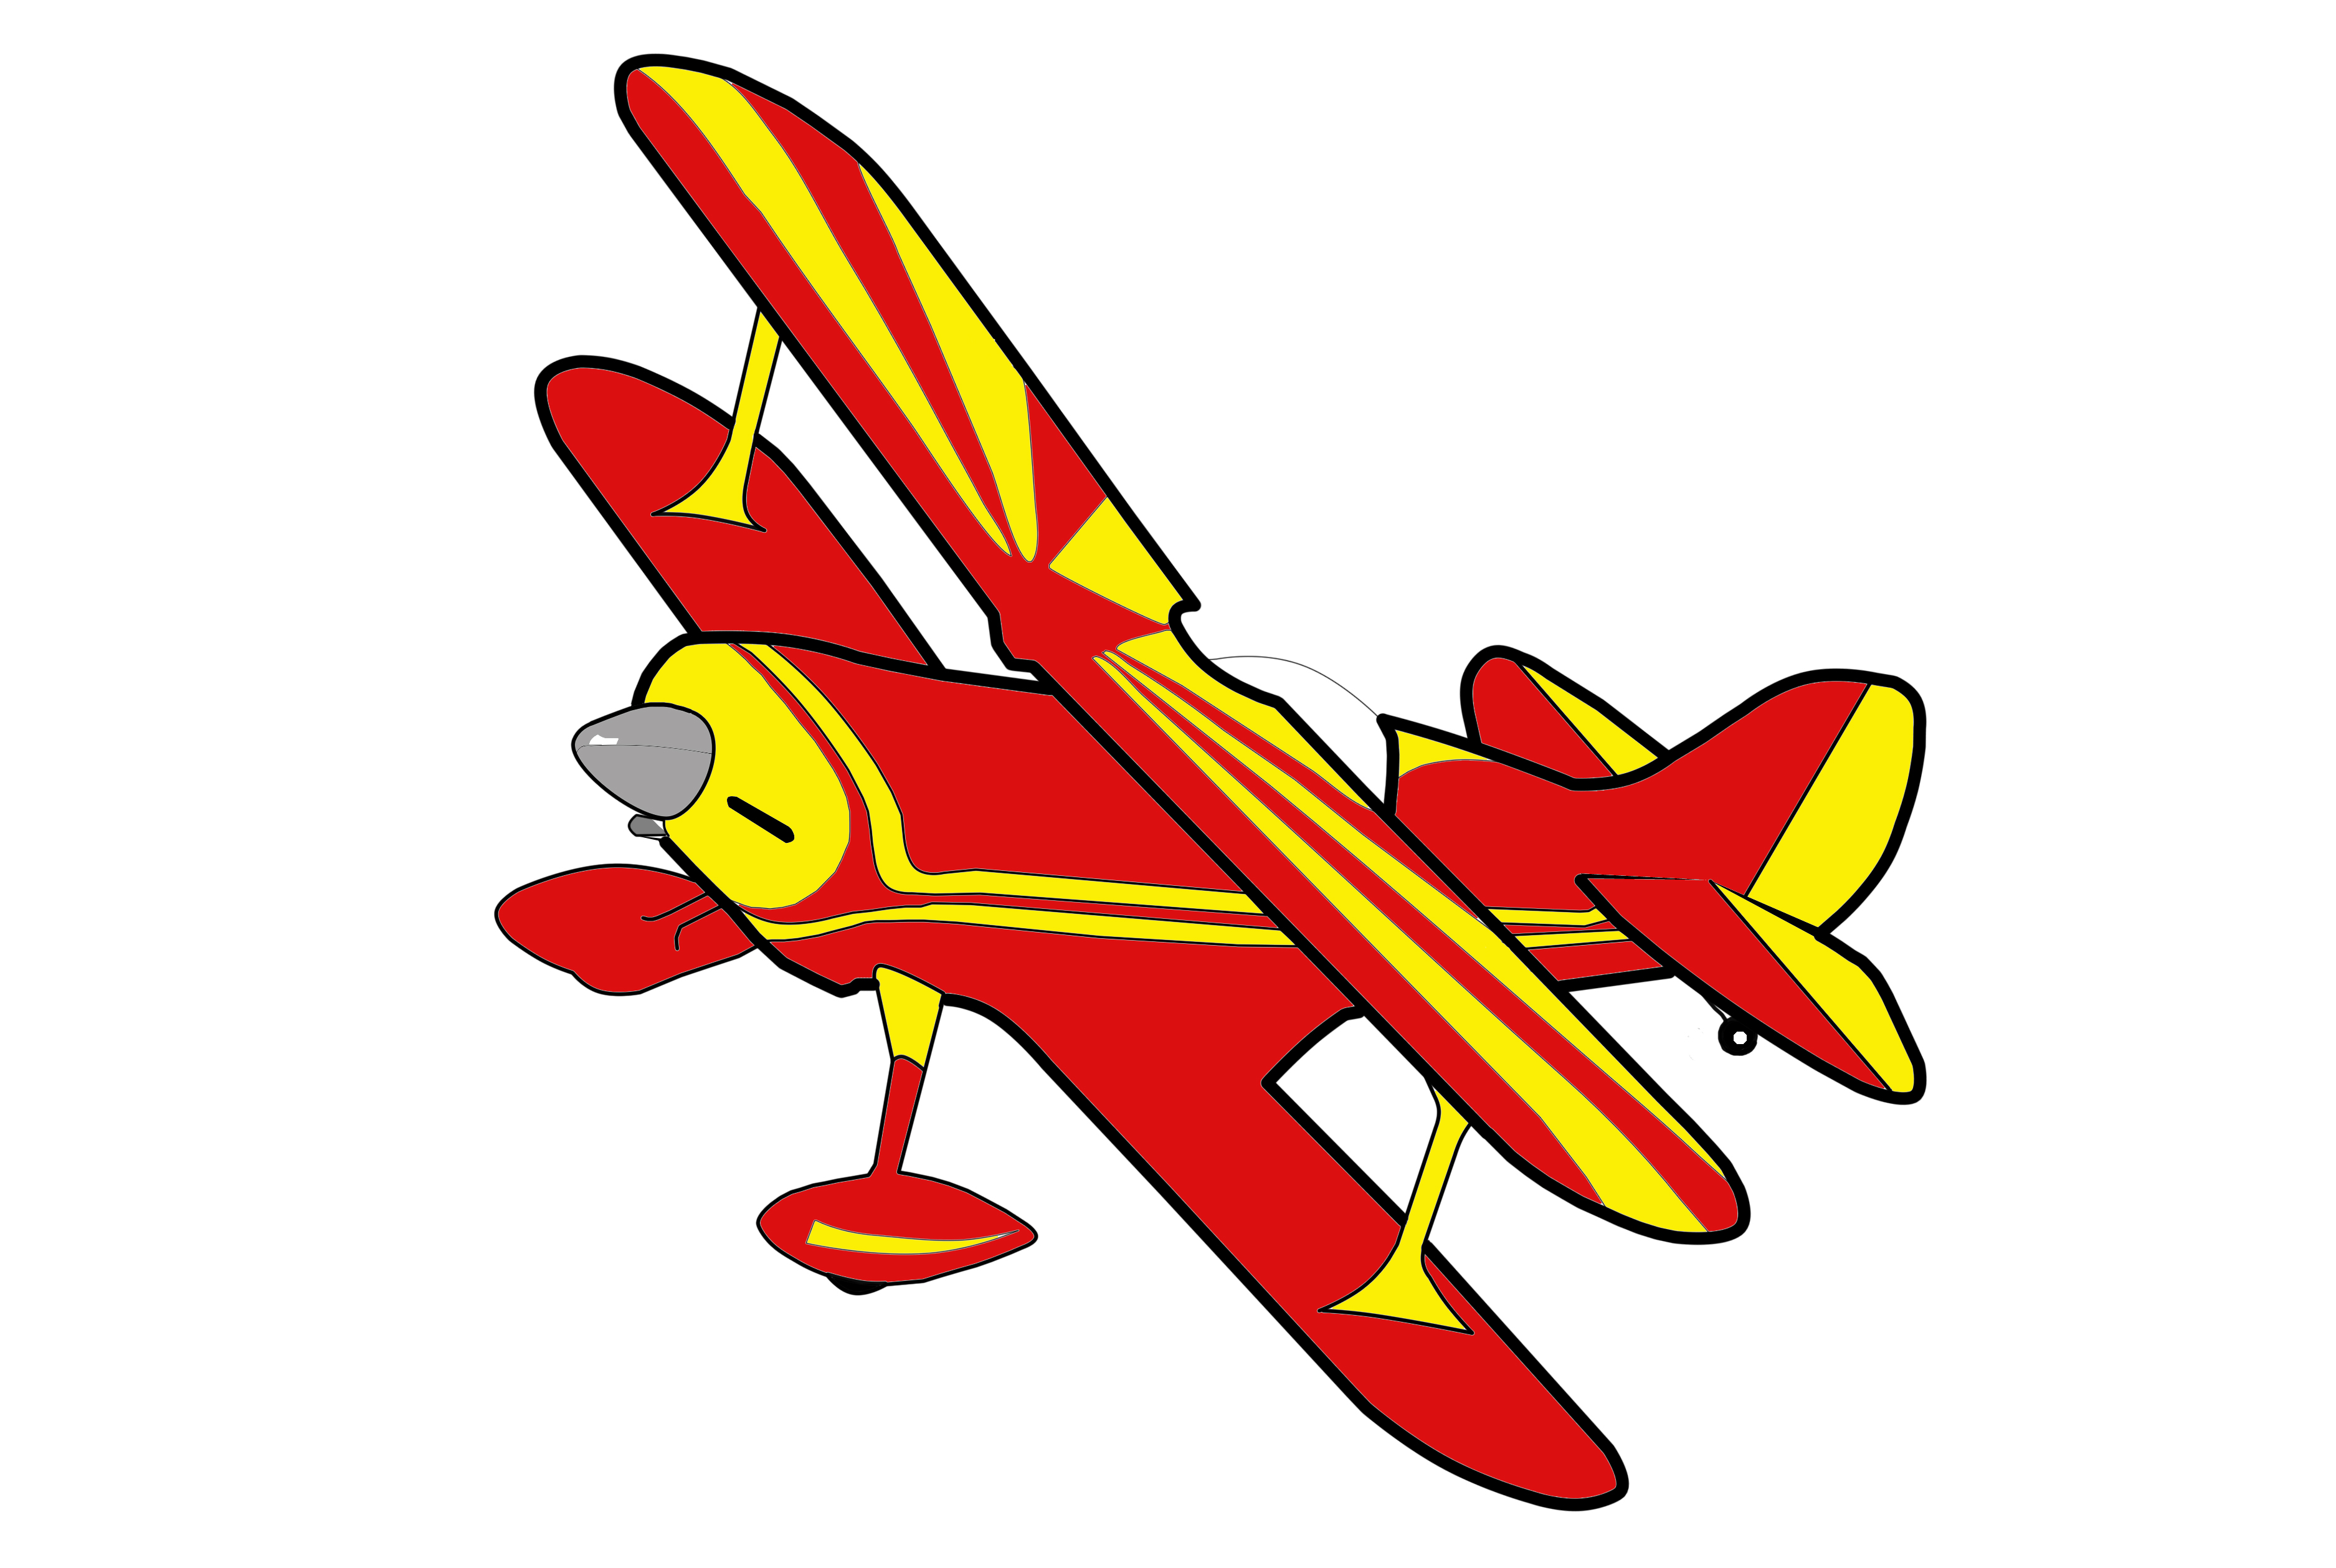 red biplane free images at clker com vector clip art airplane clipart powerpoint airplane clipart powerpoint